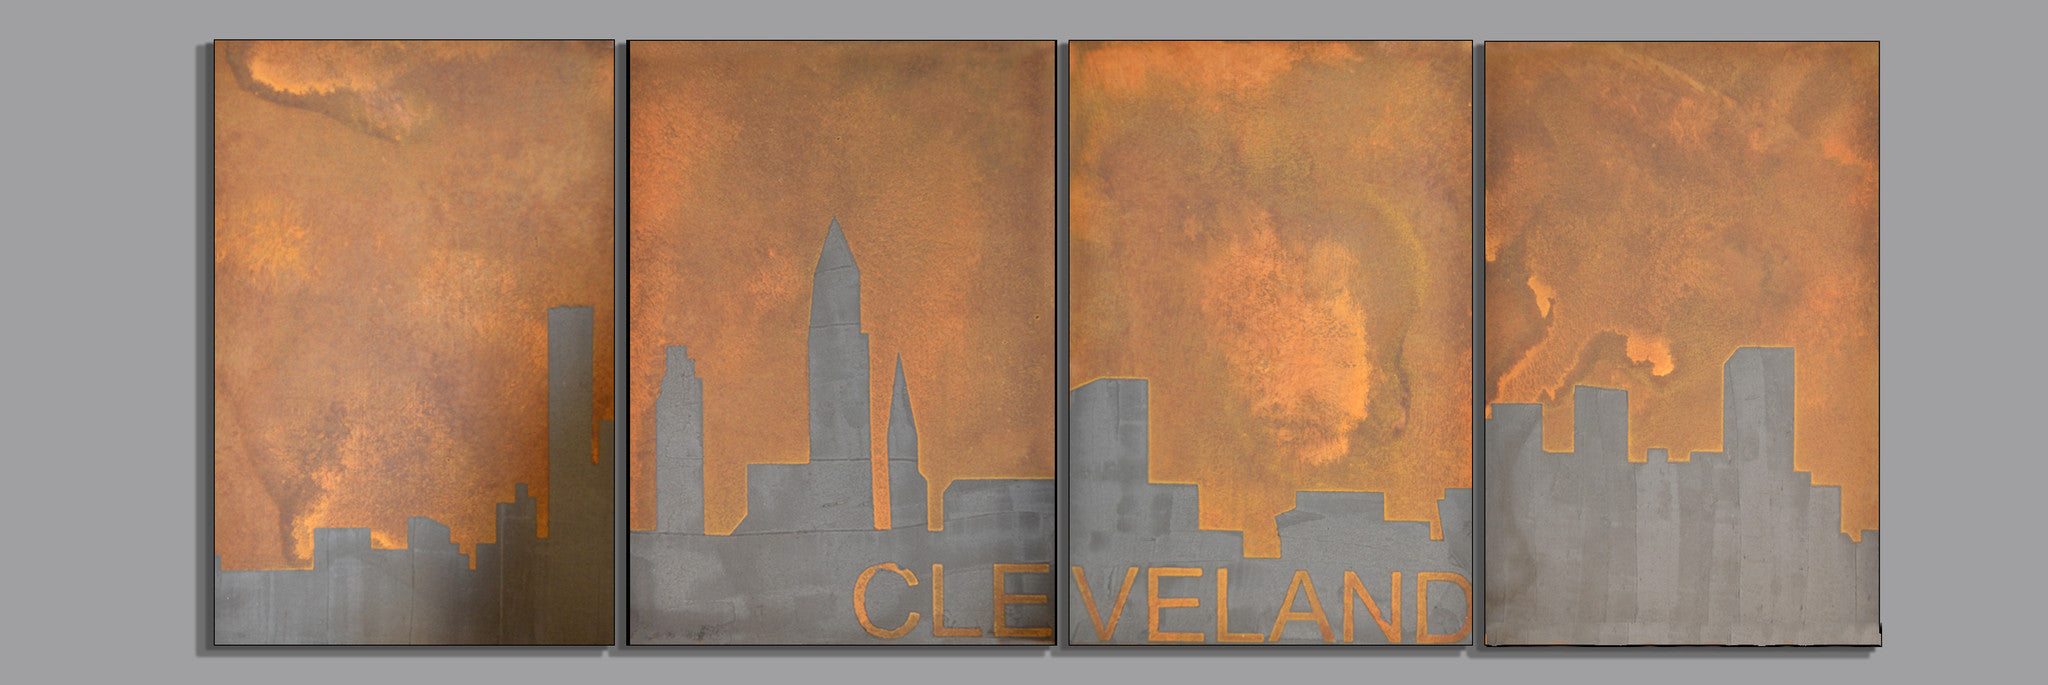 Cleveland Skyline on Blocks - Shirley's Loft - 2